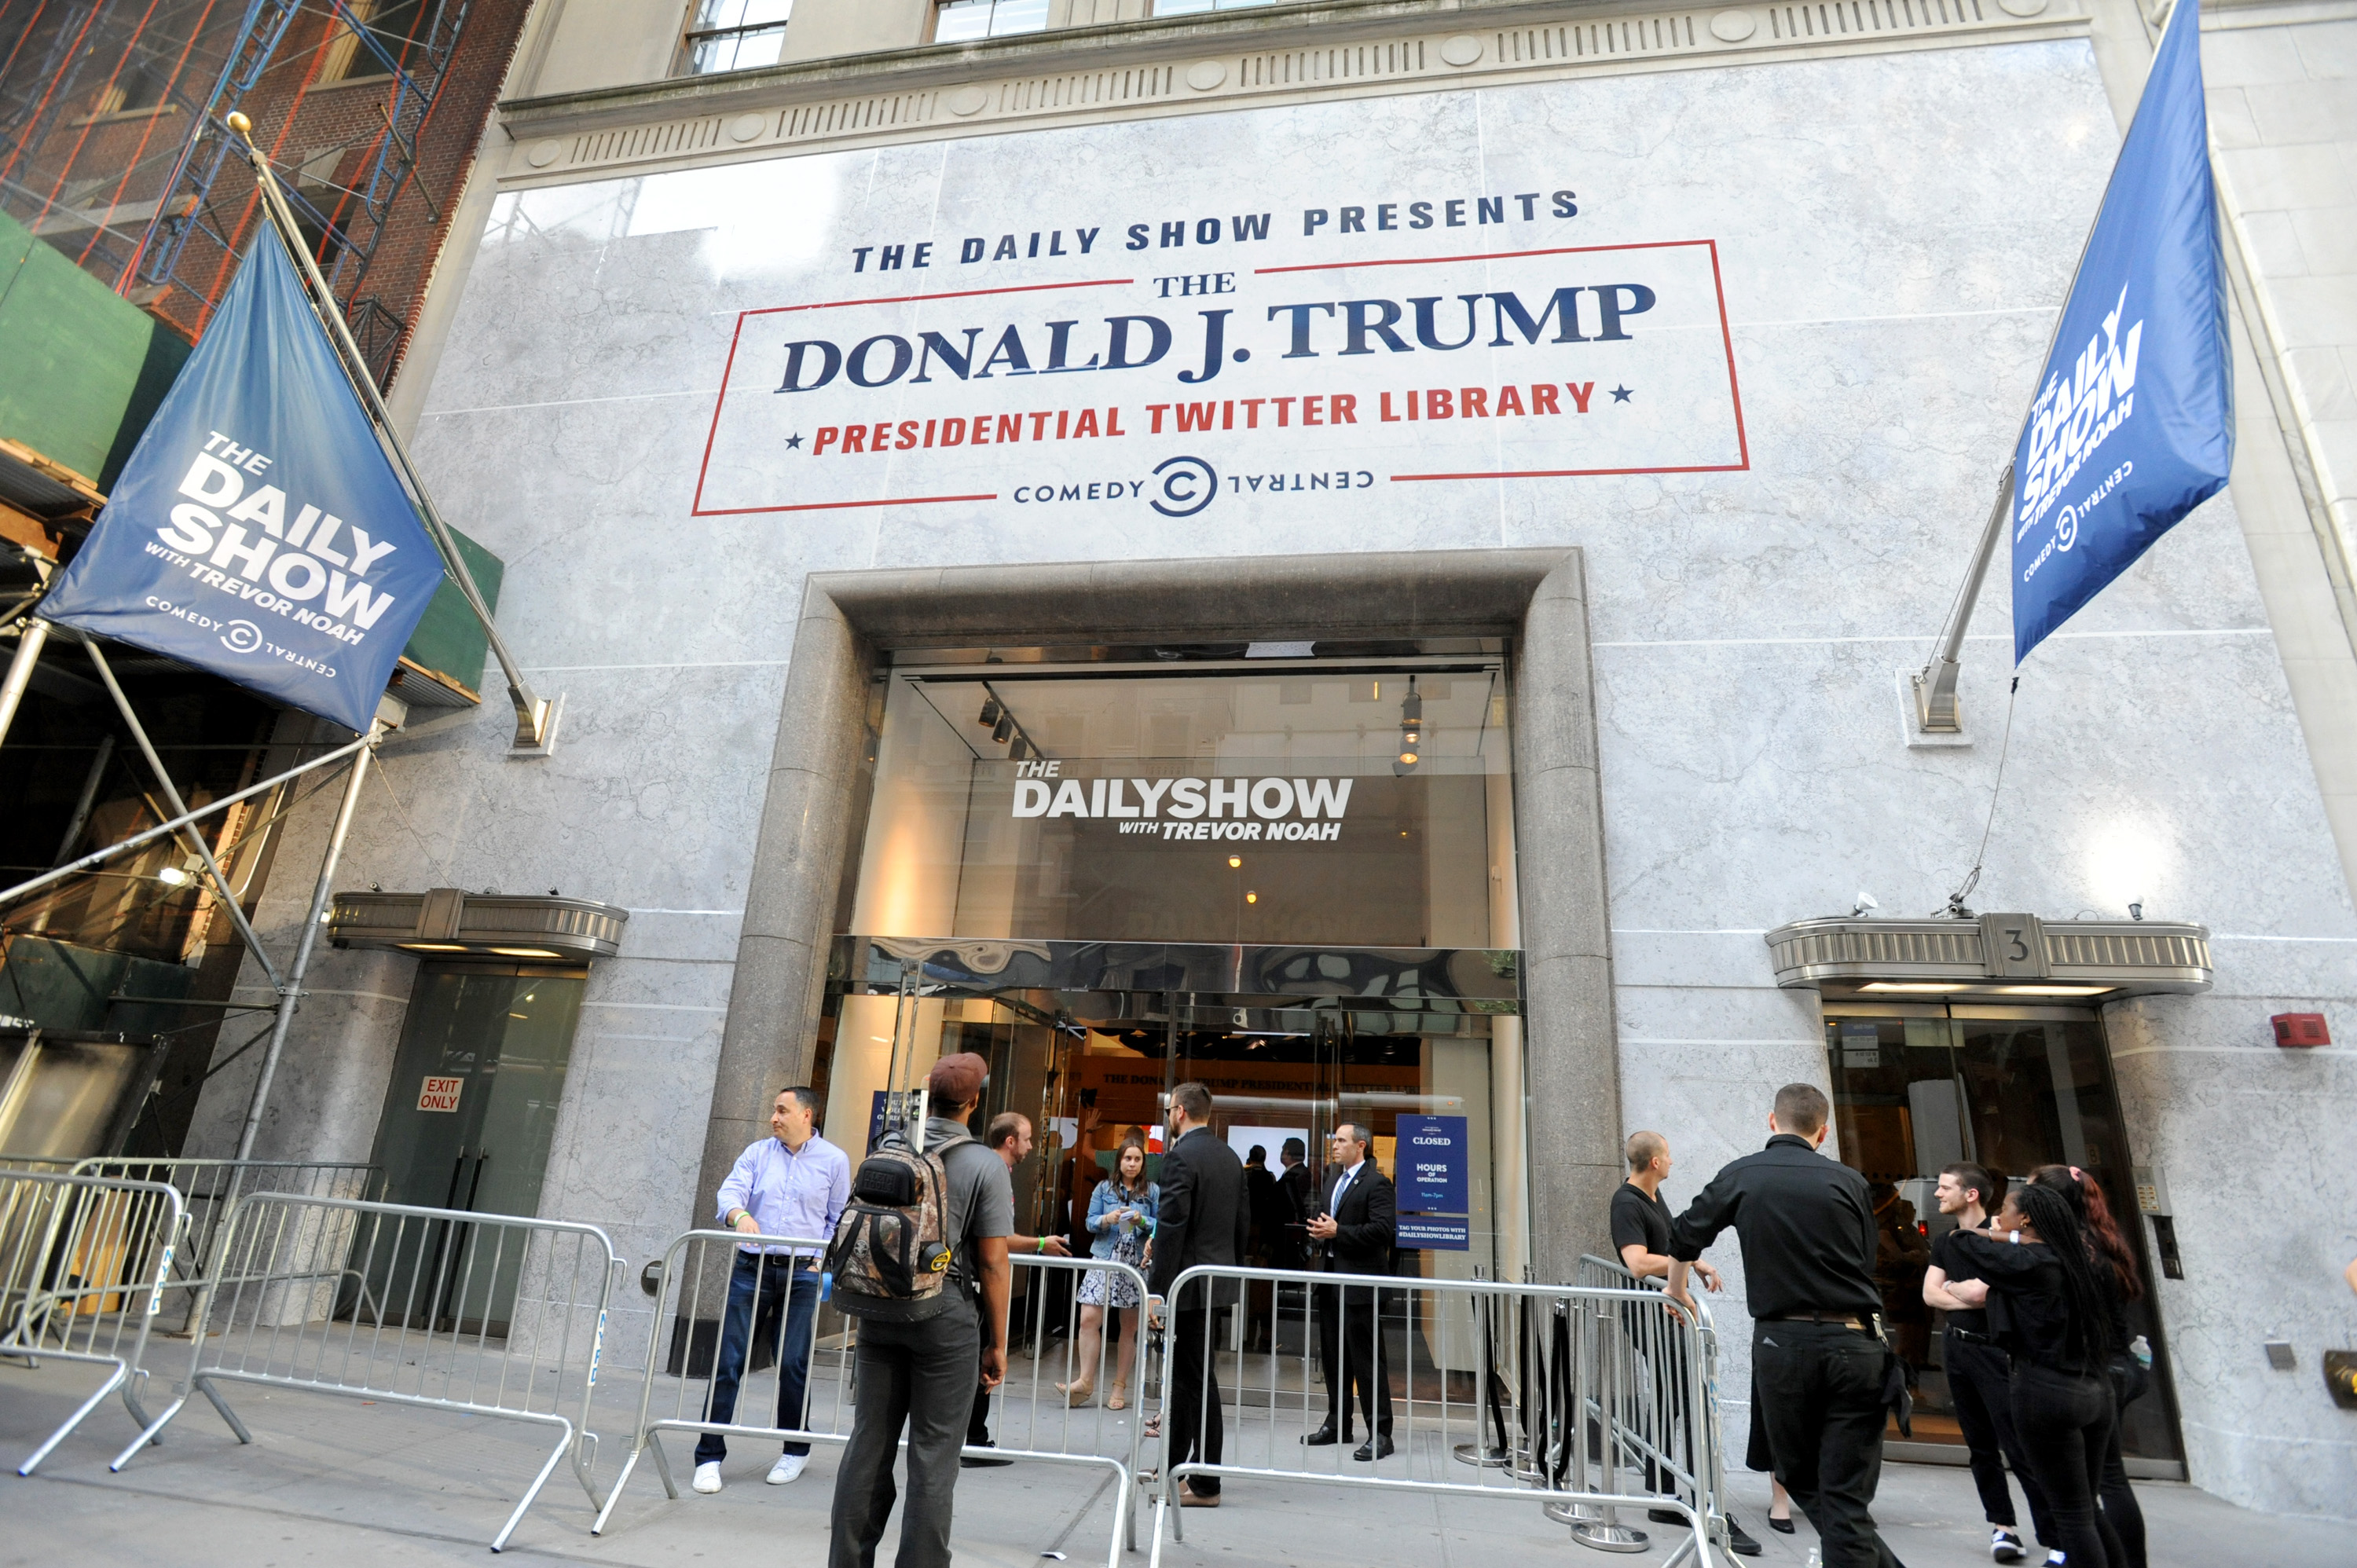 NEW YORK, NY - JUNE 15: A view of the venue at The Donald J. Trump Presidential Twitter Library Press Preview presented by Comedy Centrals The Daily Show on June 15, 2017 in New York City. (Photo by Brad Barket/Getty Images for Comedy Central)